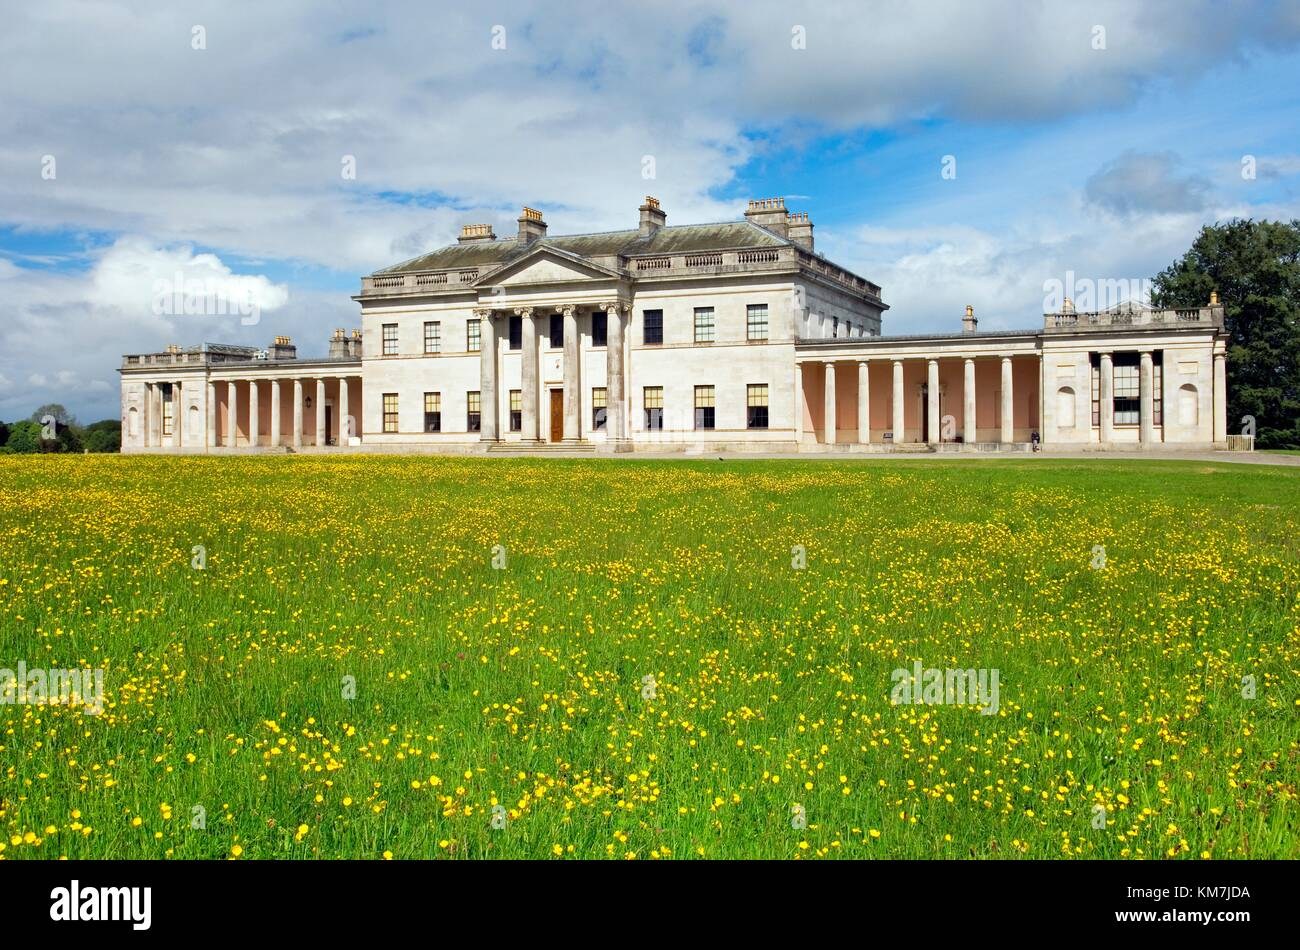 Castle Coole, neo-classical home of the Earls of Belmore. Near Enniskillen, County Fermanagh, N. Ireland - Stock Image